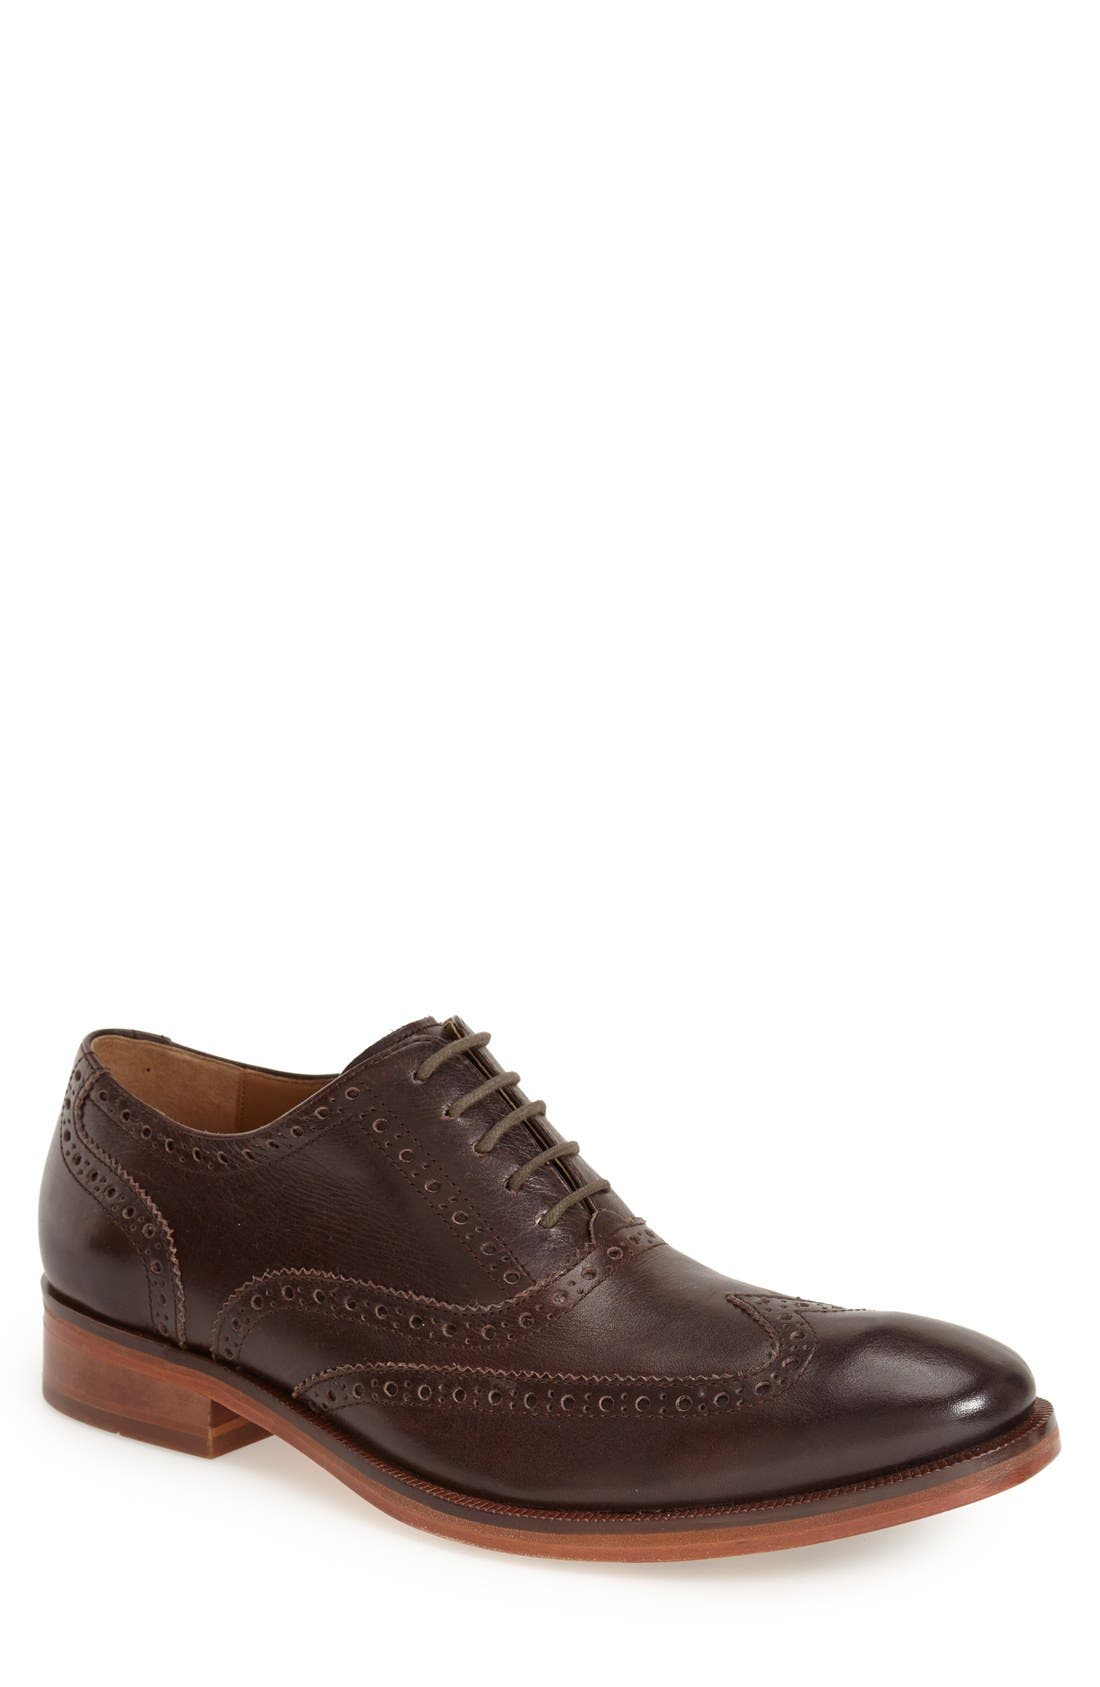 'Colton' Wingtip Oxford,                             Main thumbnail 1, color,                             Chestnut